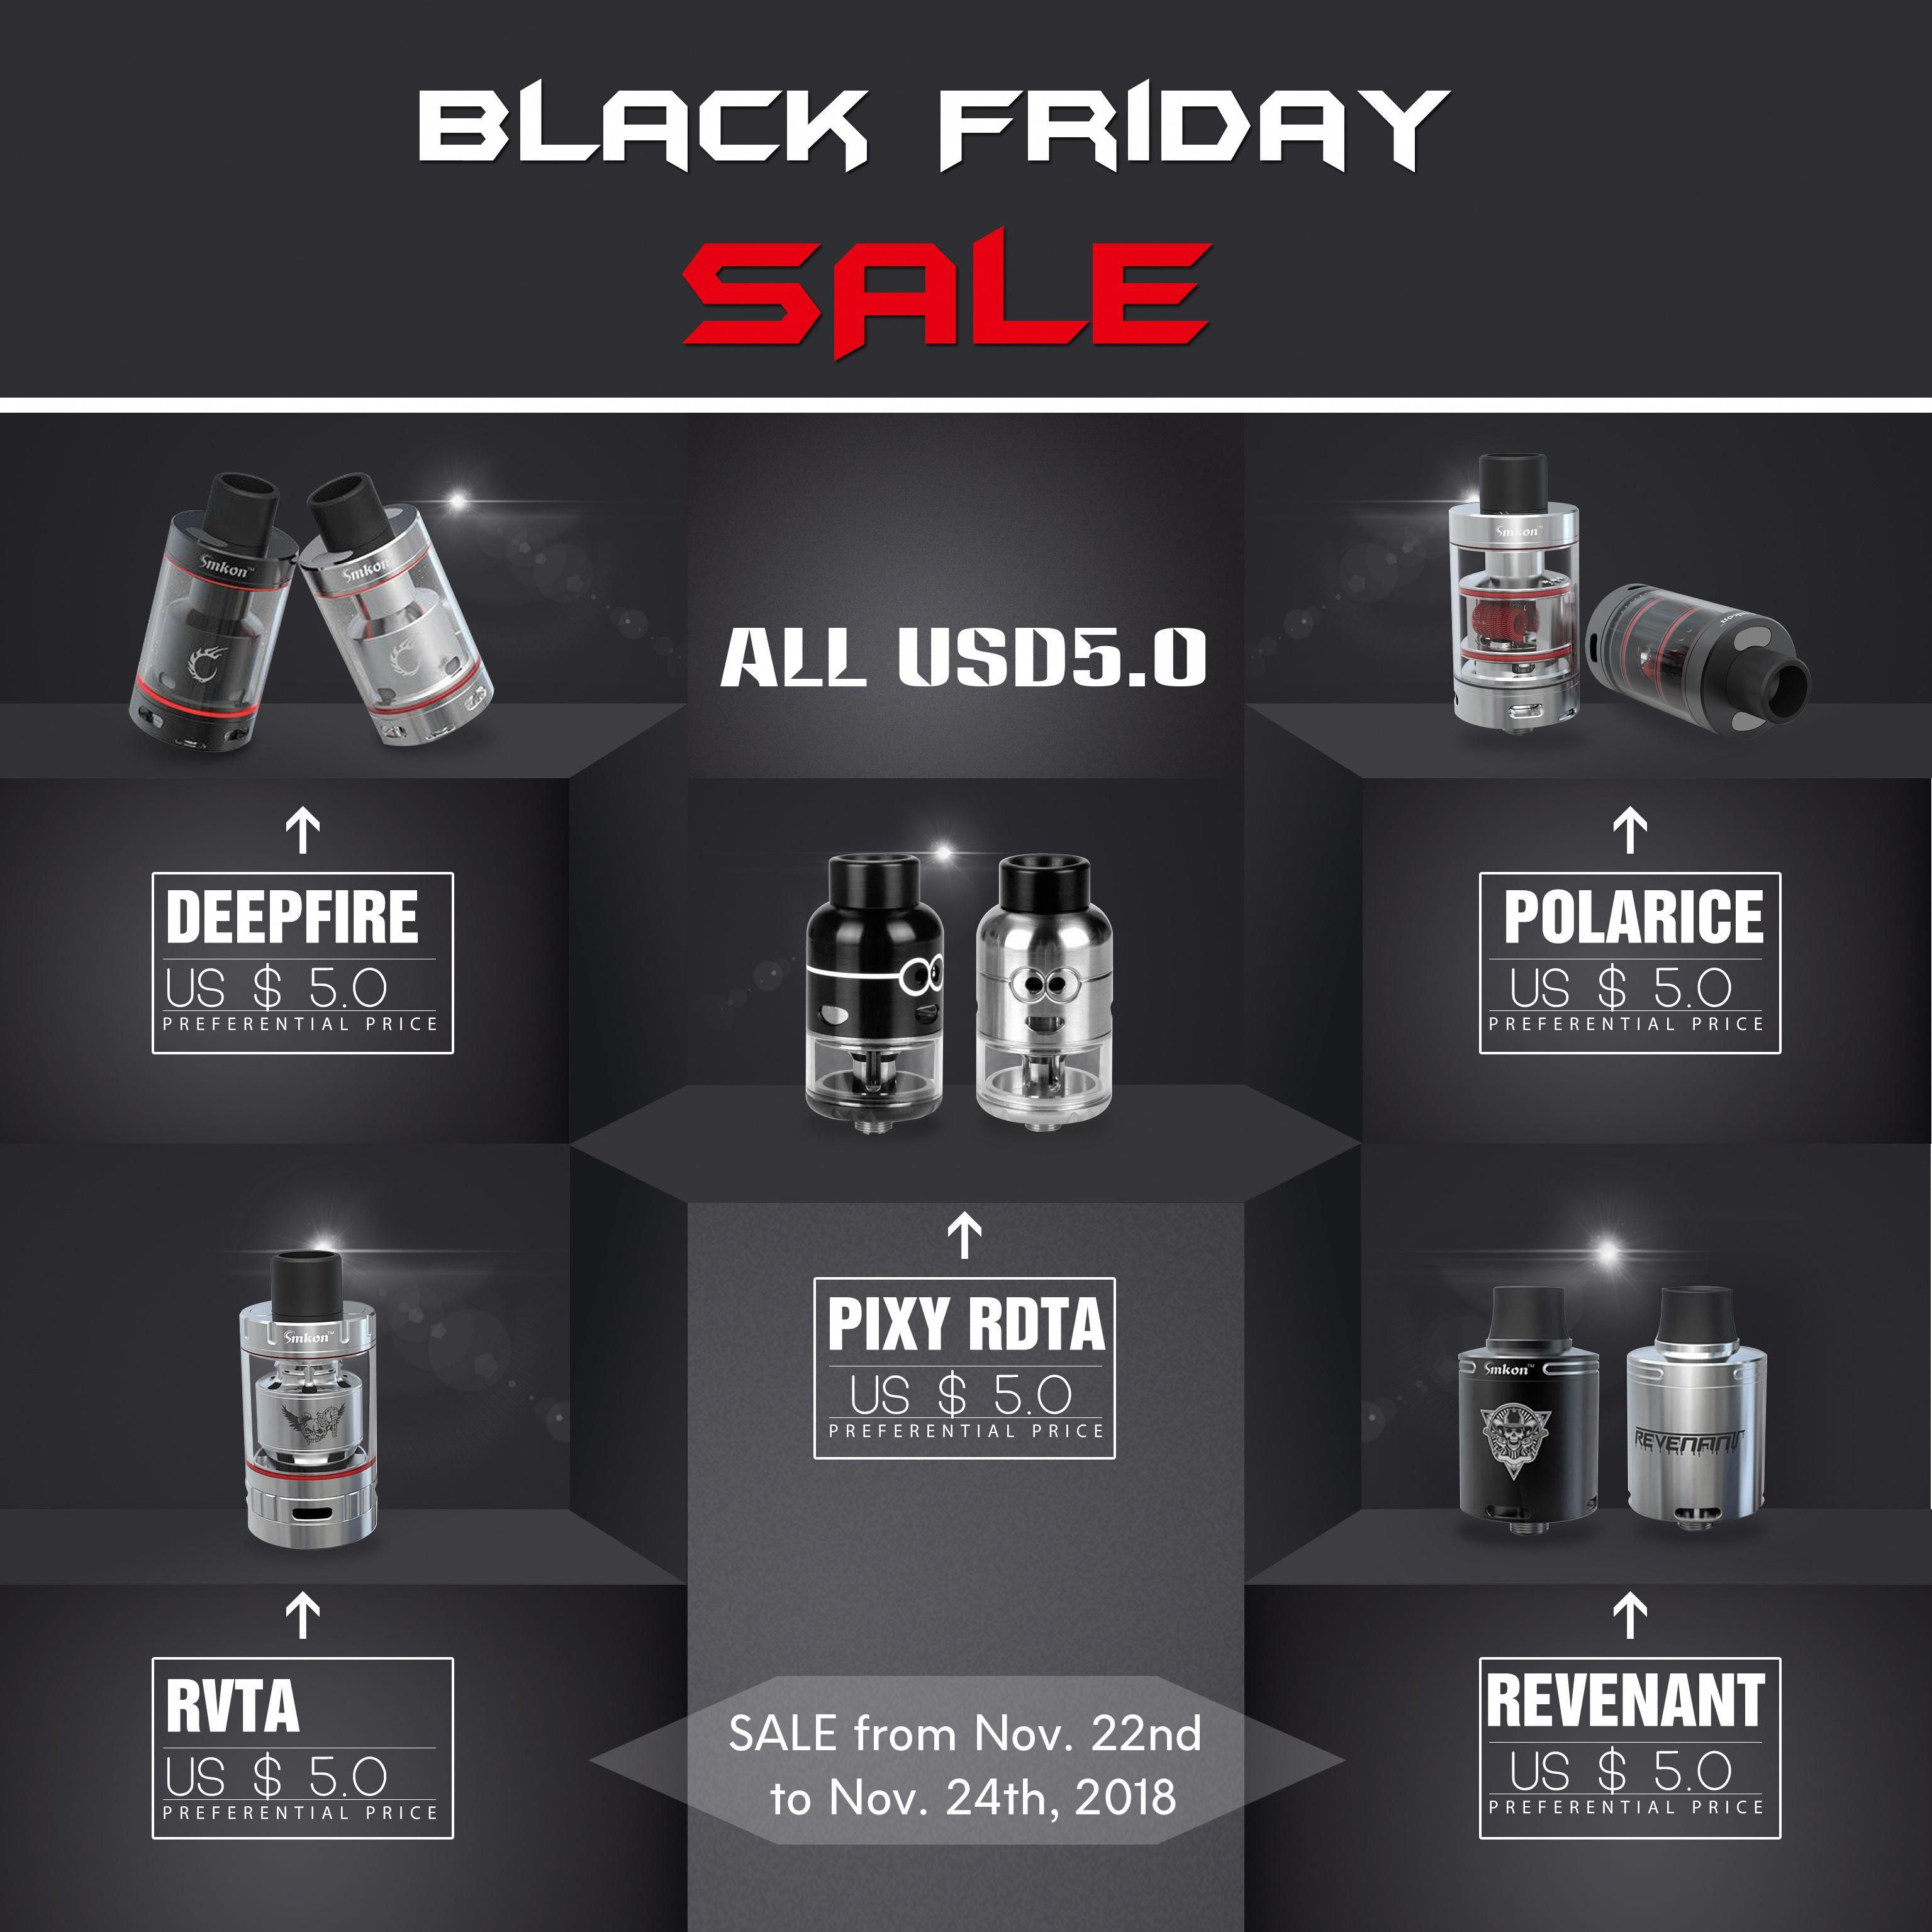 Black Friday Sale Is Coming Hashtag Vapesale Hashtag Vapingsale Hashtag Blackfriday Hashtag Blackfriday2018 Has Dry Herb Vape Pen Wax Vape Pen Vape Pens